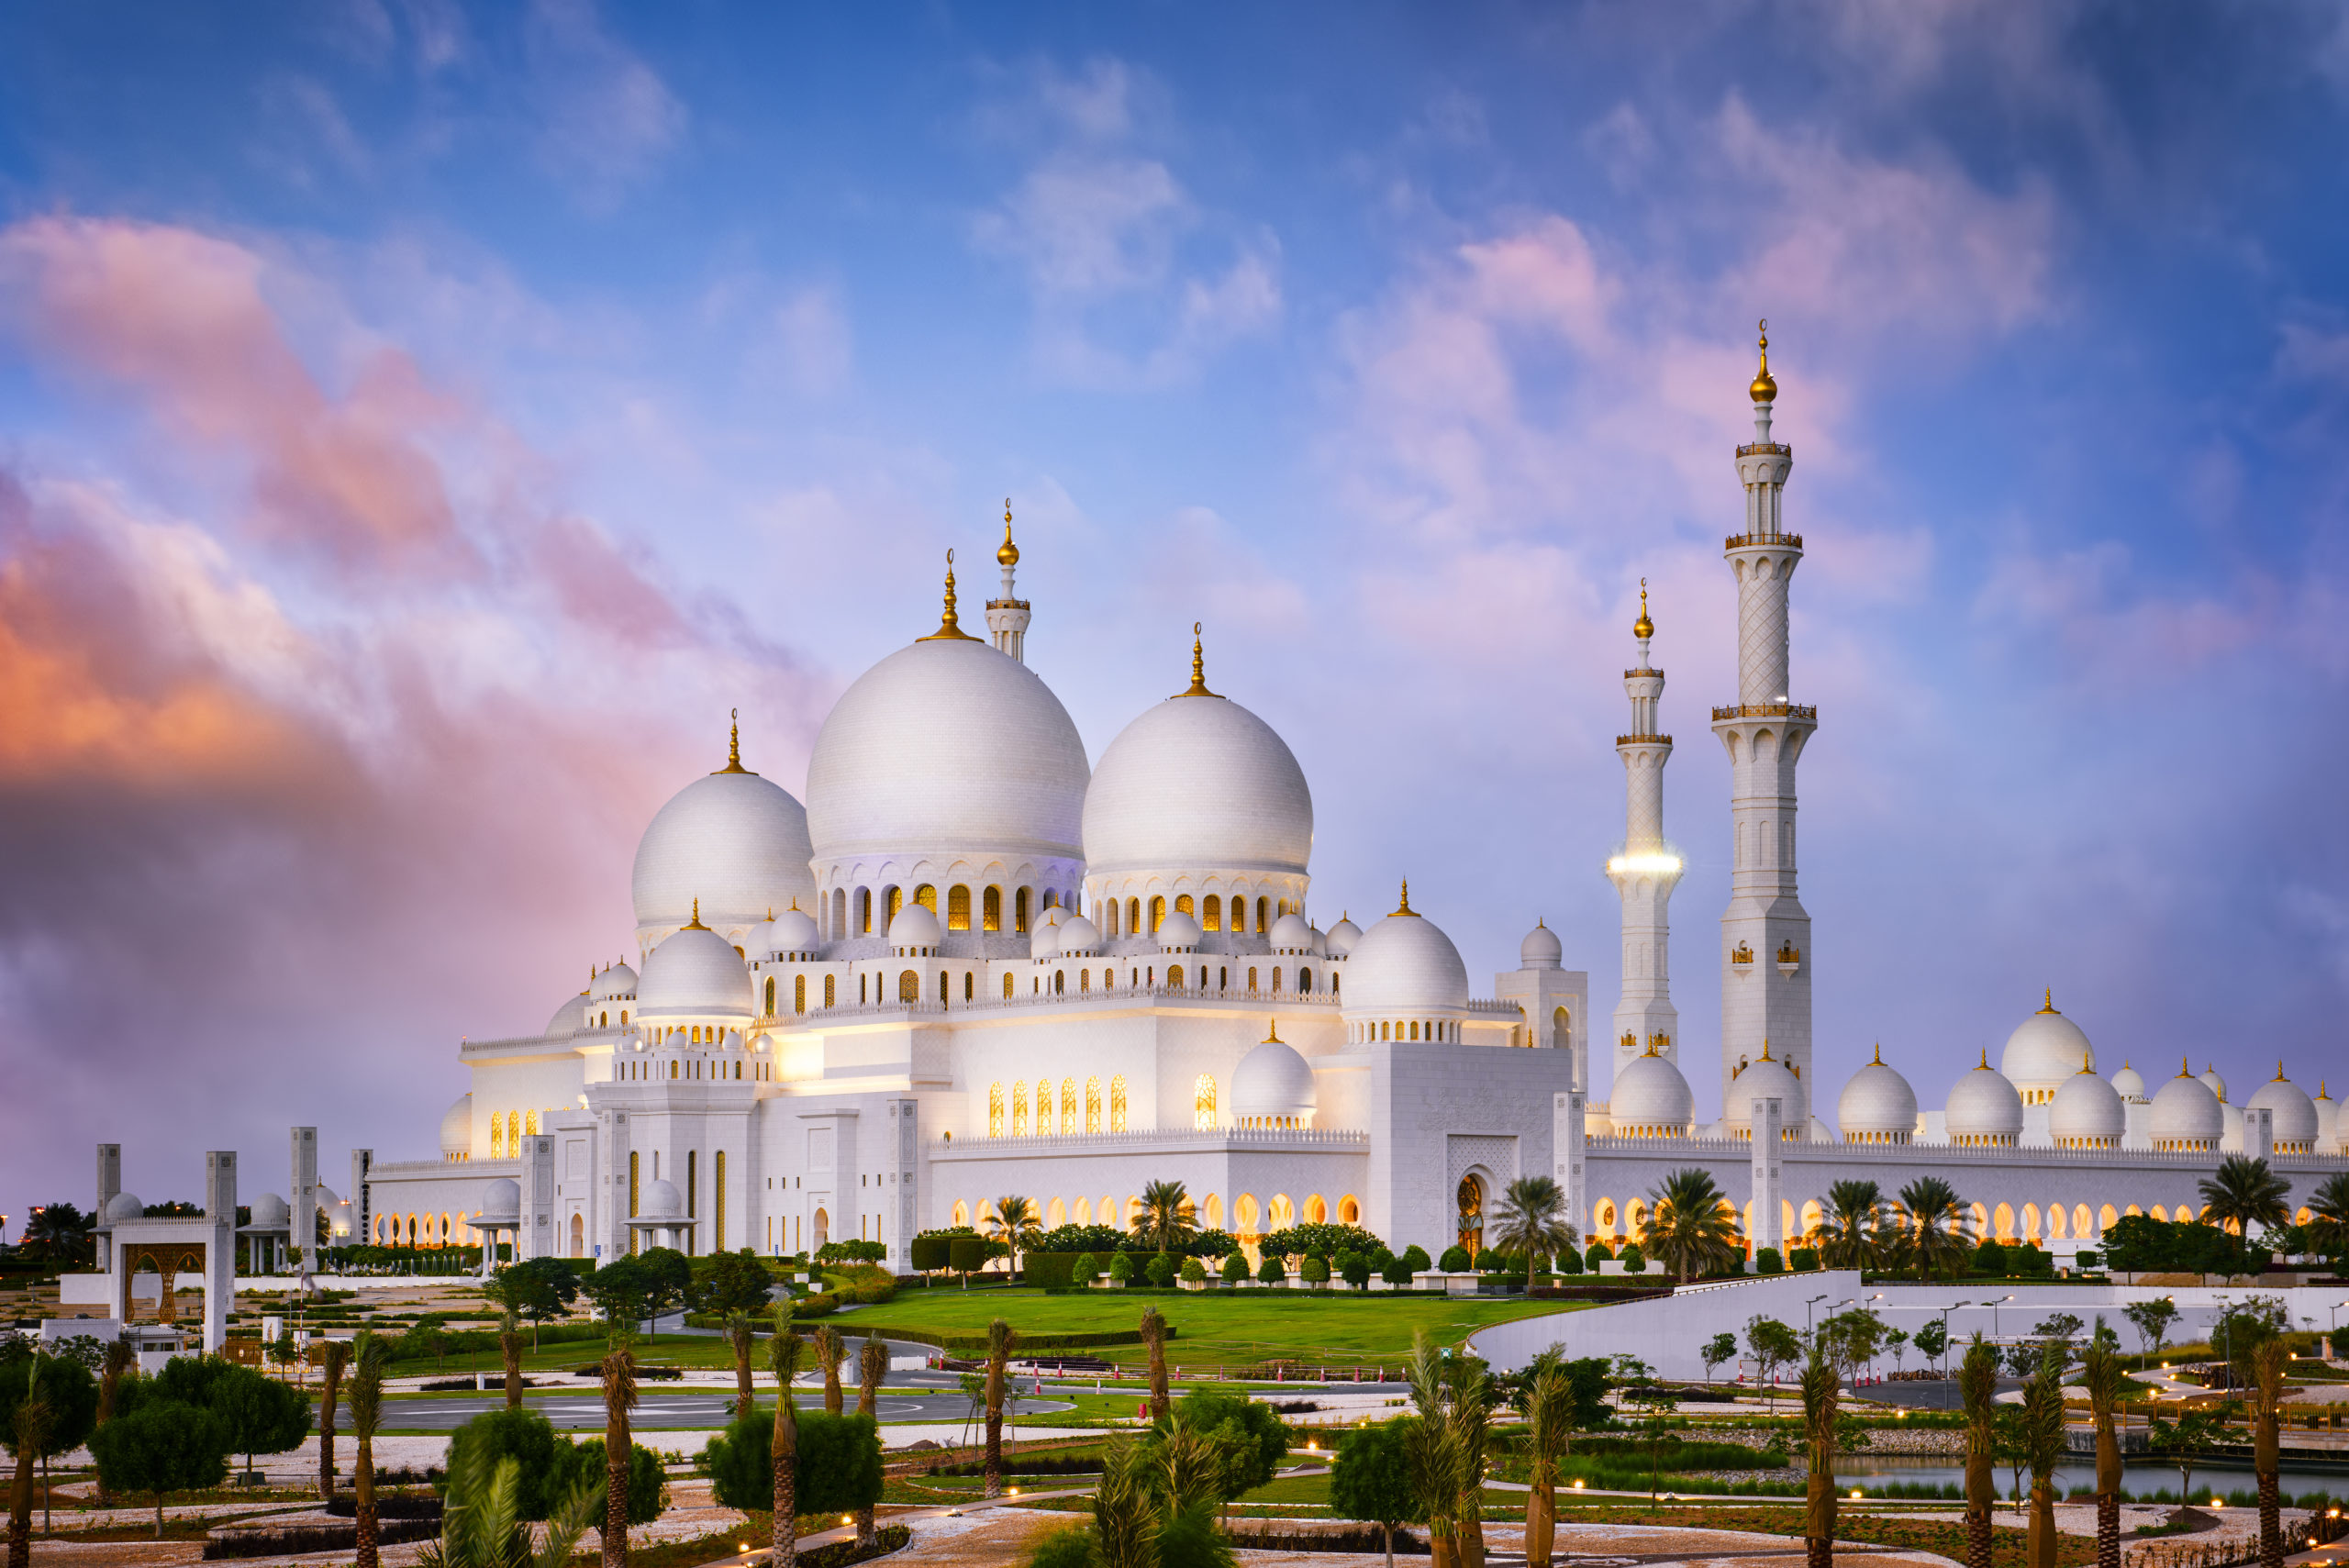 Abu Dhabi - From Shutterstock By ventdusud